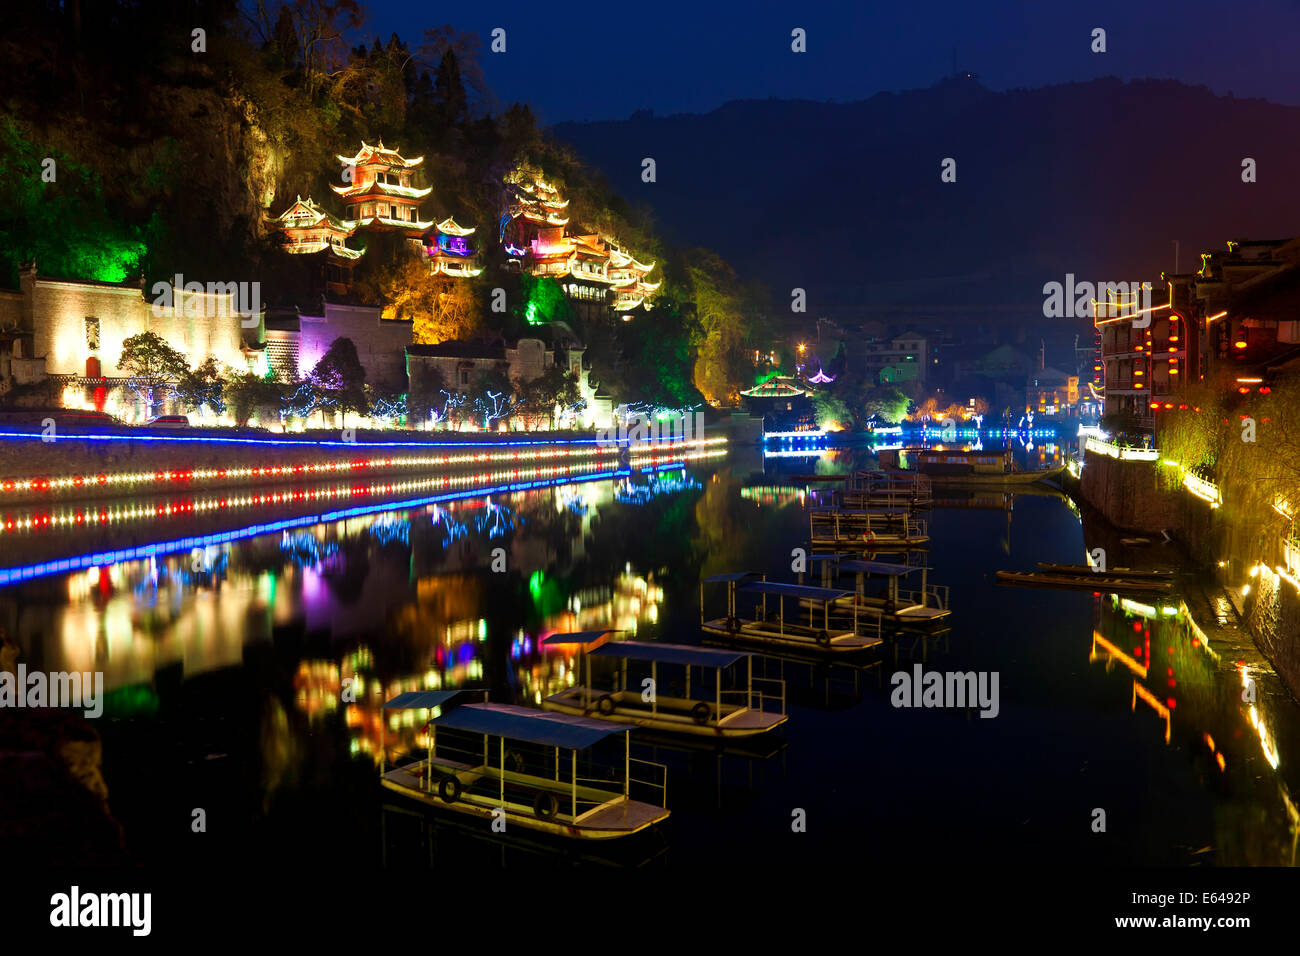 Zhenyuan illuminated at dusk, Zhenyuan, Guizhou, China - Stock Image